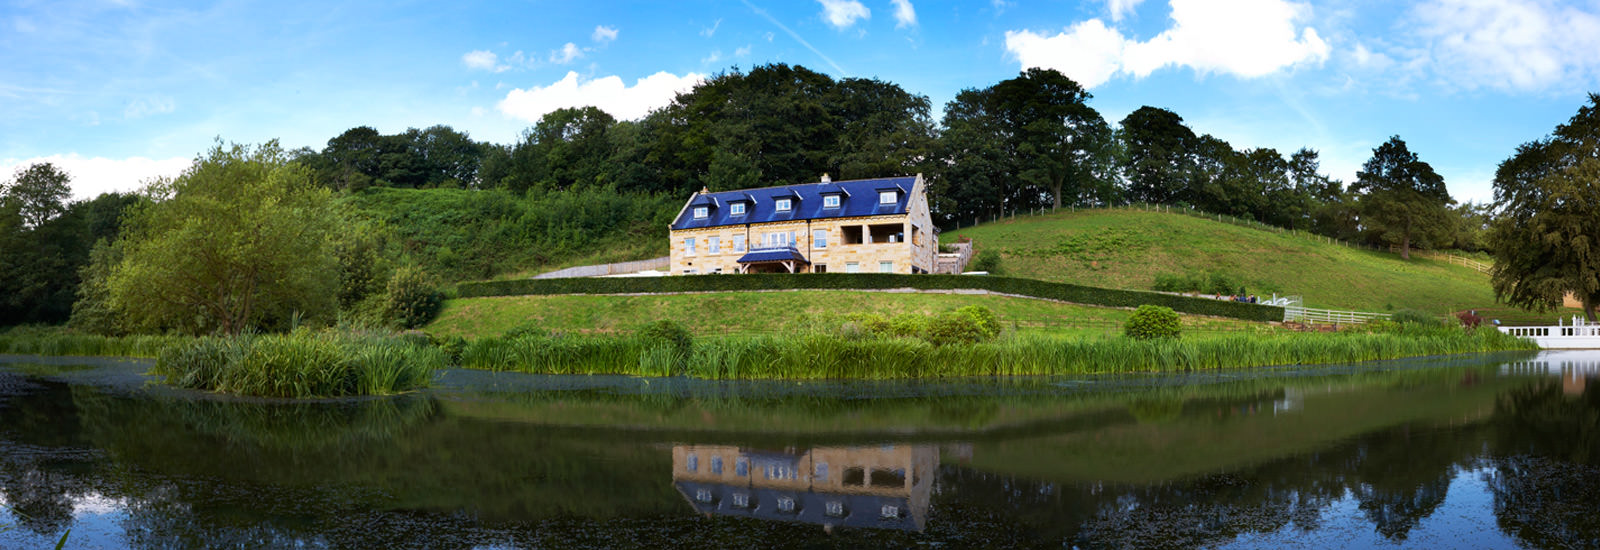 Panoramic view of the Lake House at Raithwaite Estate